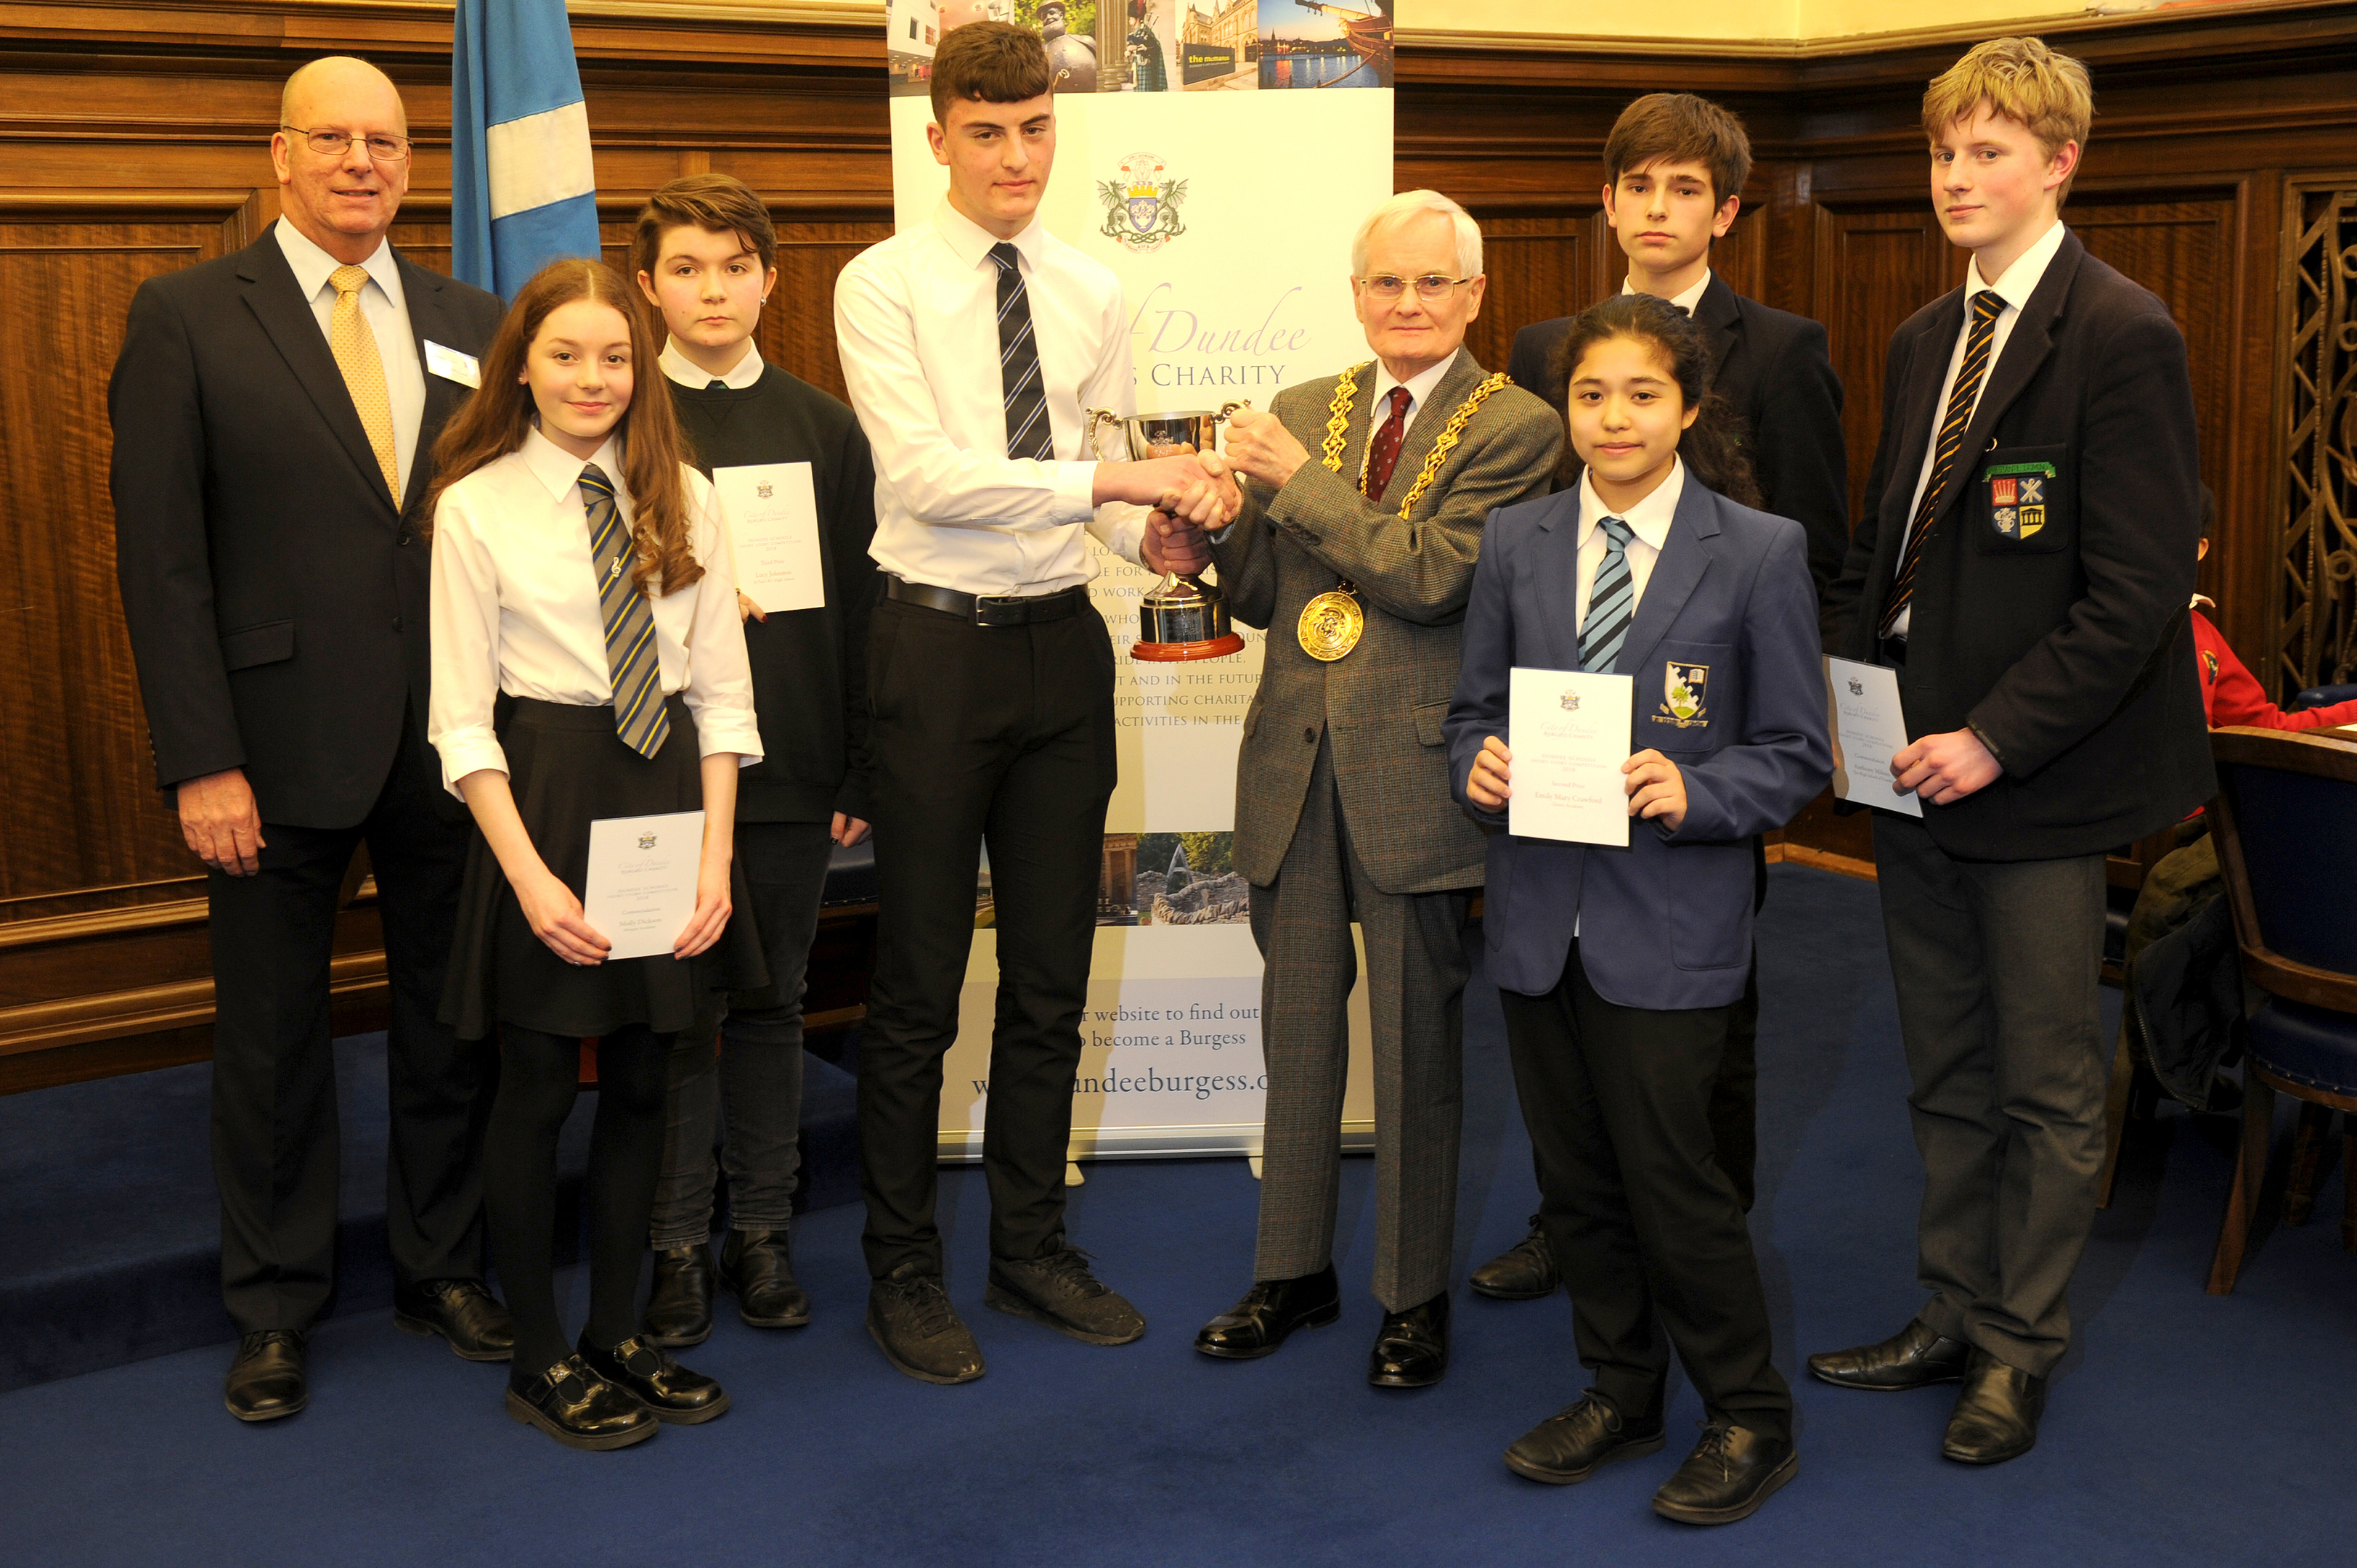 Lewis Neilson receives the trophy from Lord Provost Ian Borthwick and City of Dundee Burgess Charity chairman Brian McLeod (left). Also pictured are pupils Molly Dickson of Morgan Academy (worth of mention), Lucy Johnston of St Paul's RC Academy (third place), Emily Crawford of Grove Academy (second place) and Daniel Hamilton and Anthony Mills of Dundee High School (both worthy of mention).